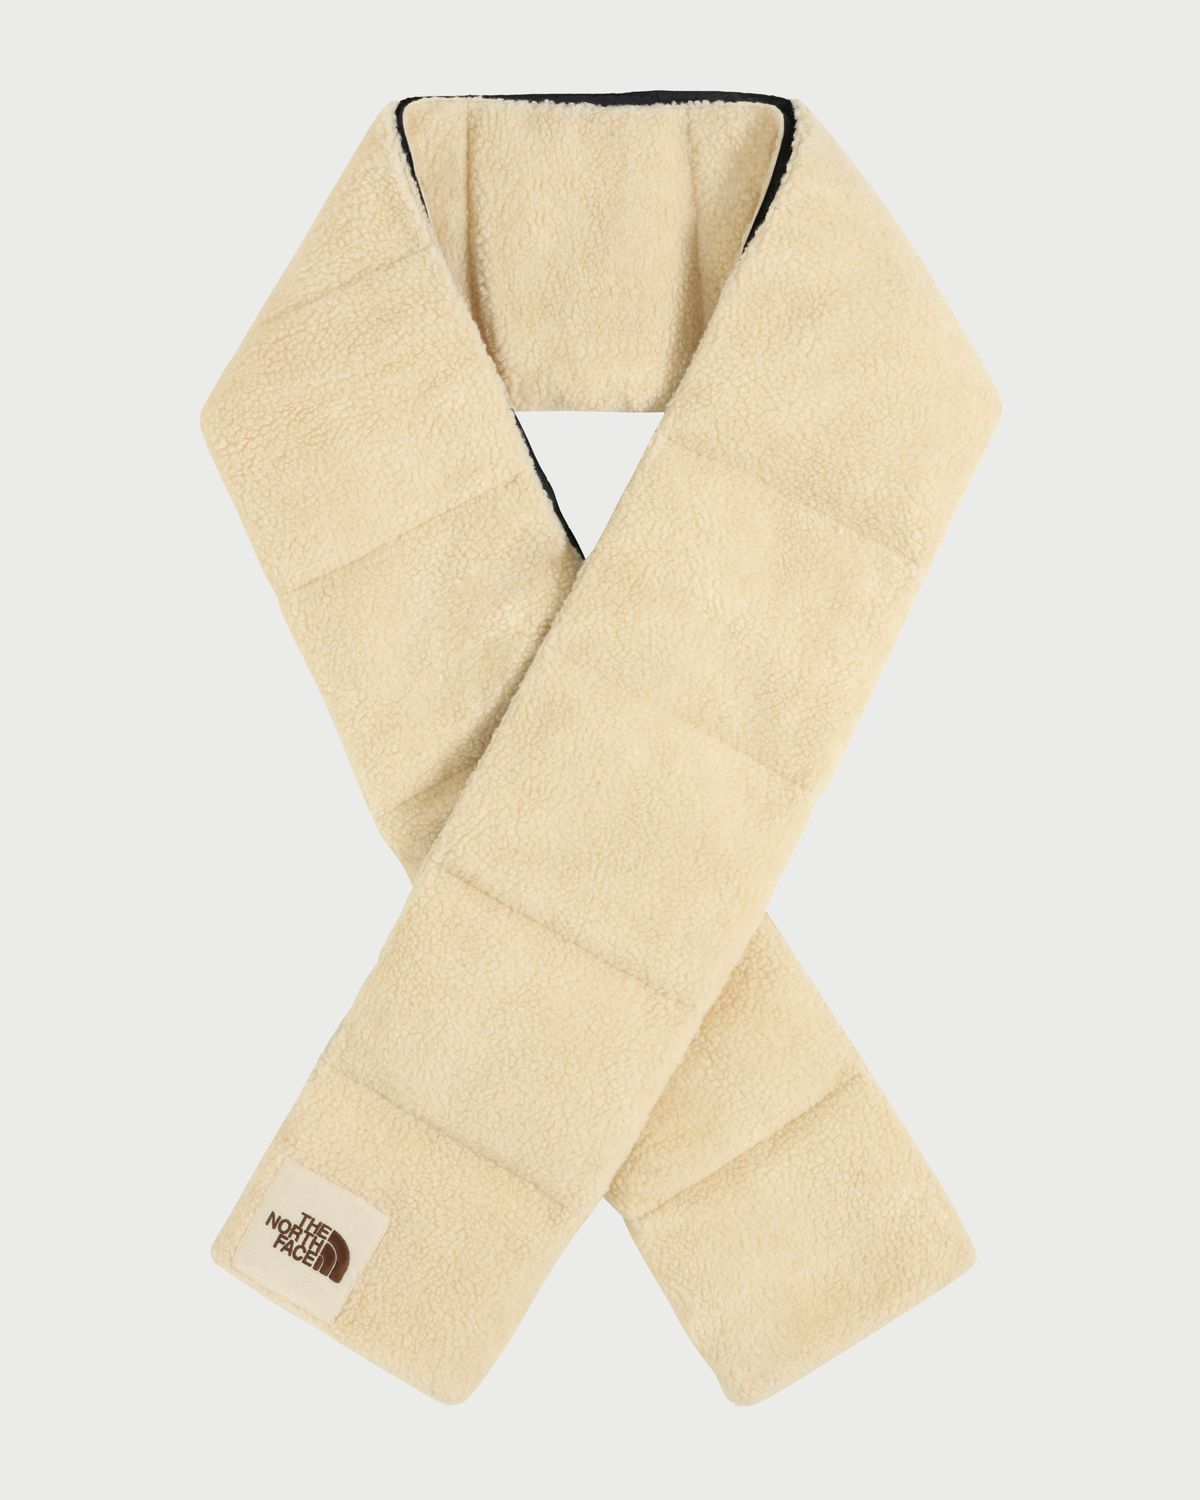 The North Face Brown Label - Insulated Scarf Bleached Sand Unisex - Image 1